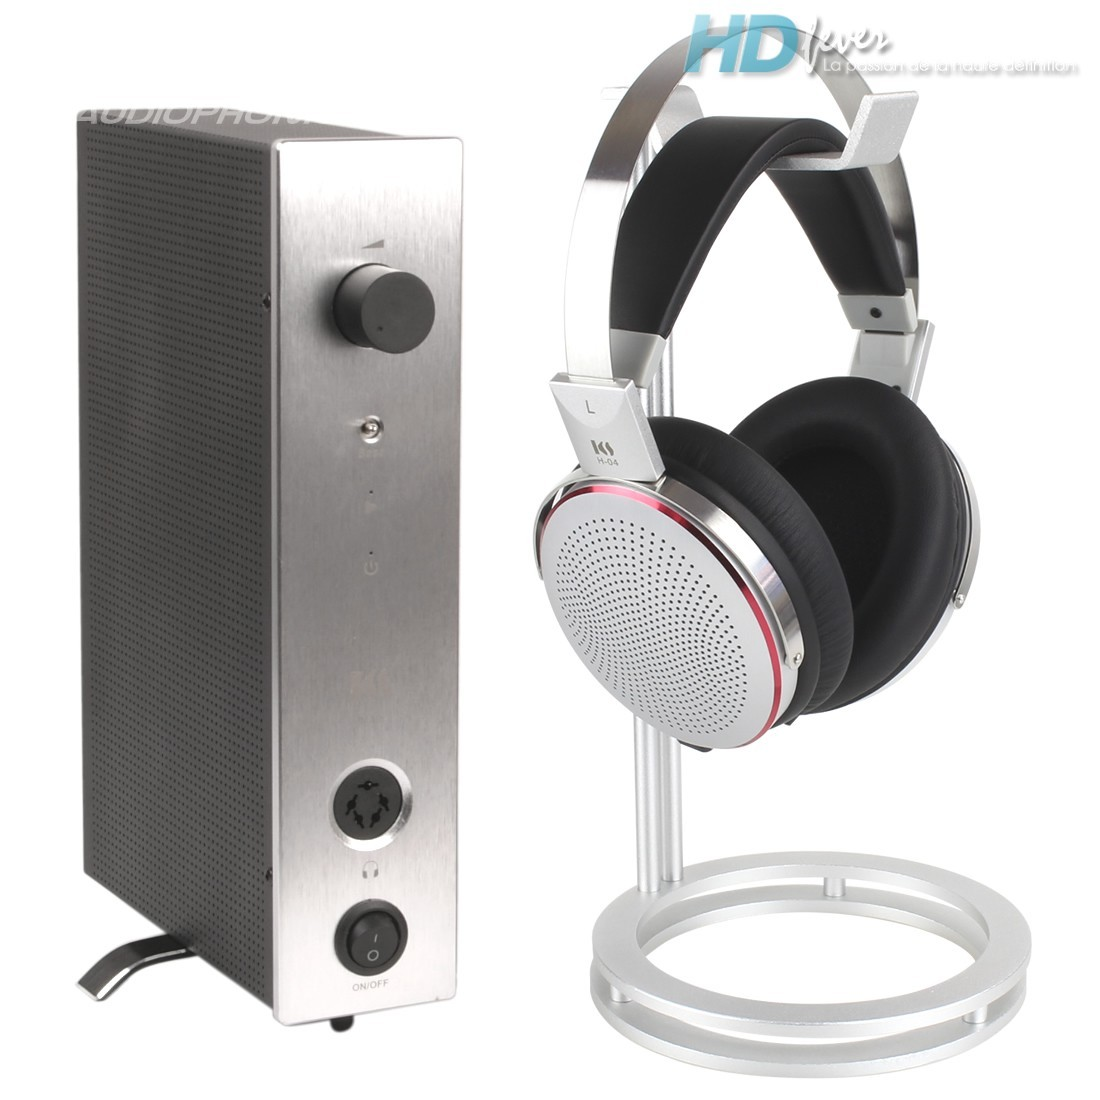 KINGSOUND M-10 Amplificateur & KS-H4 Casque Electrostatique Pack Argent